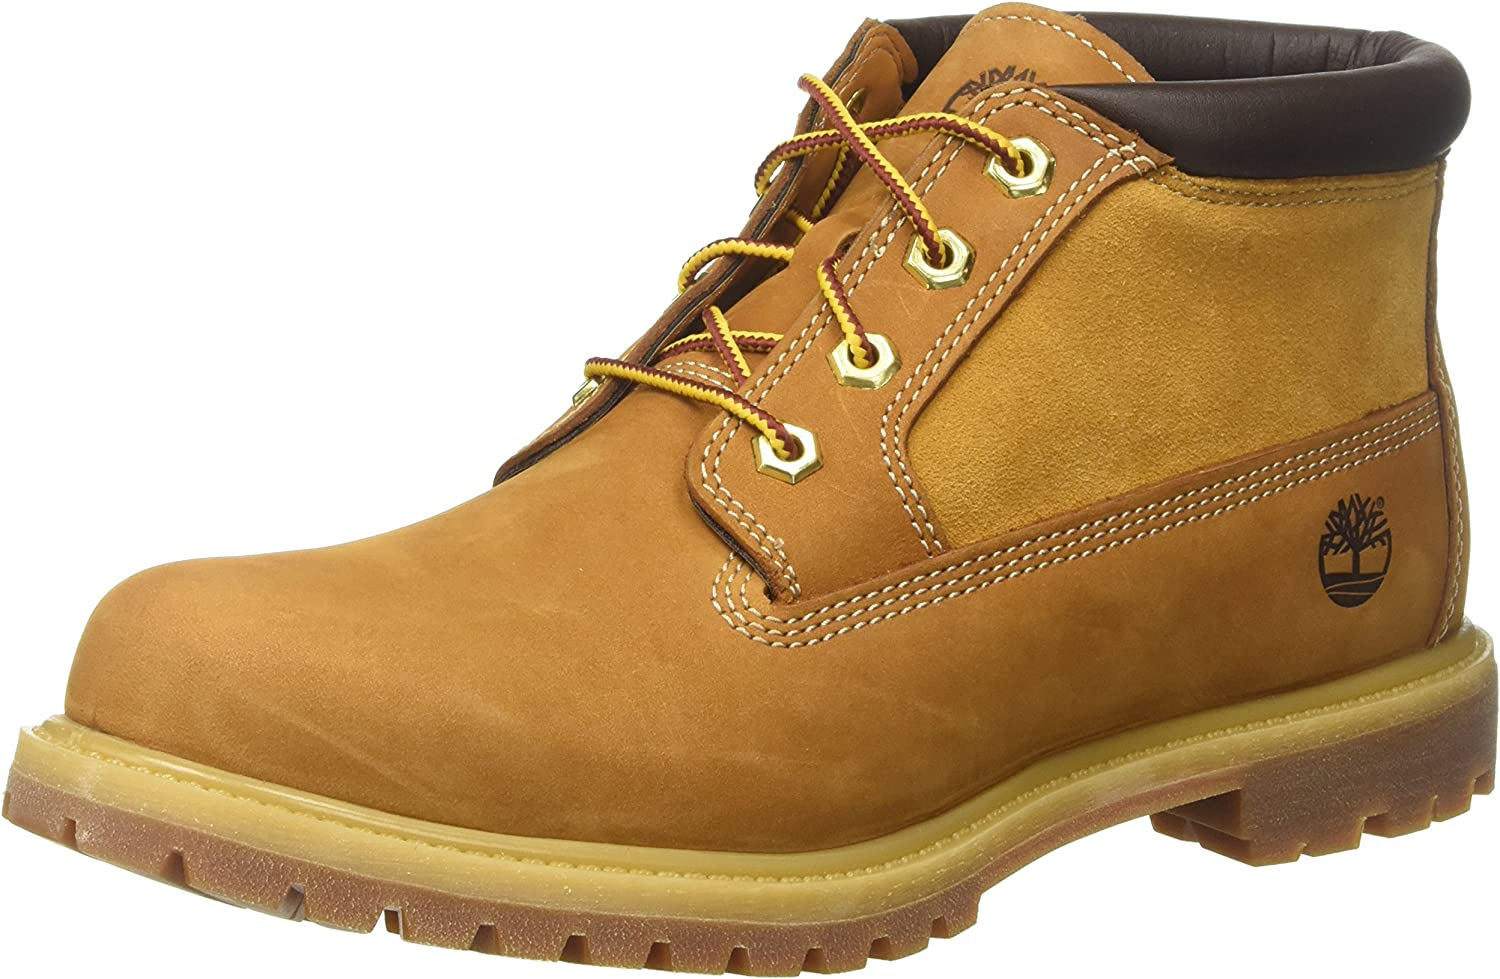 Bottes Femme Timberland Nellie Chukka Leather SDE Non-Waterproof